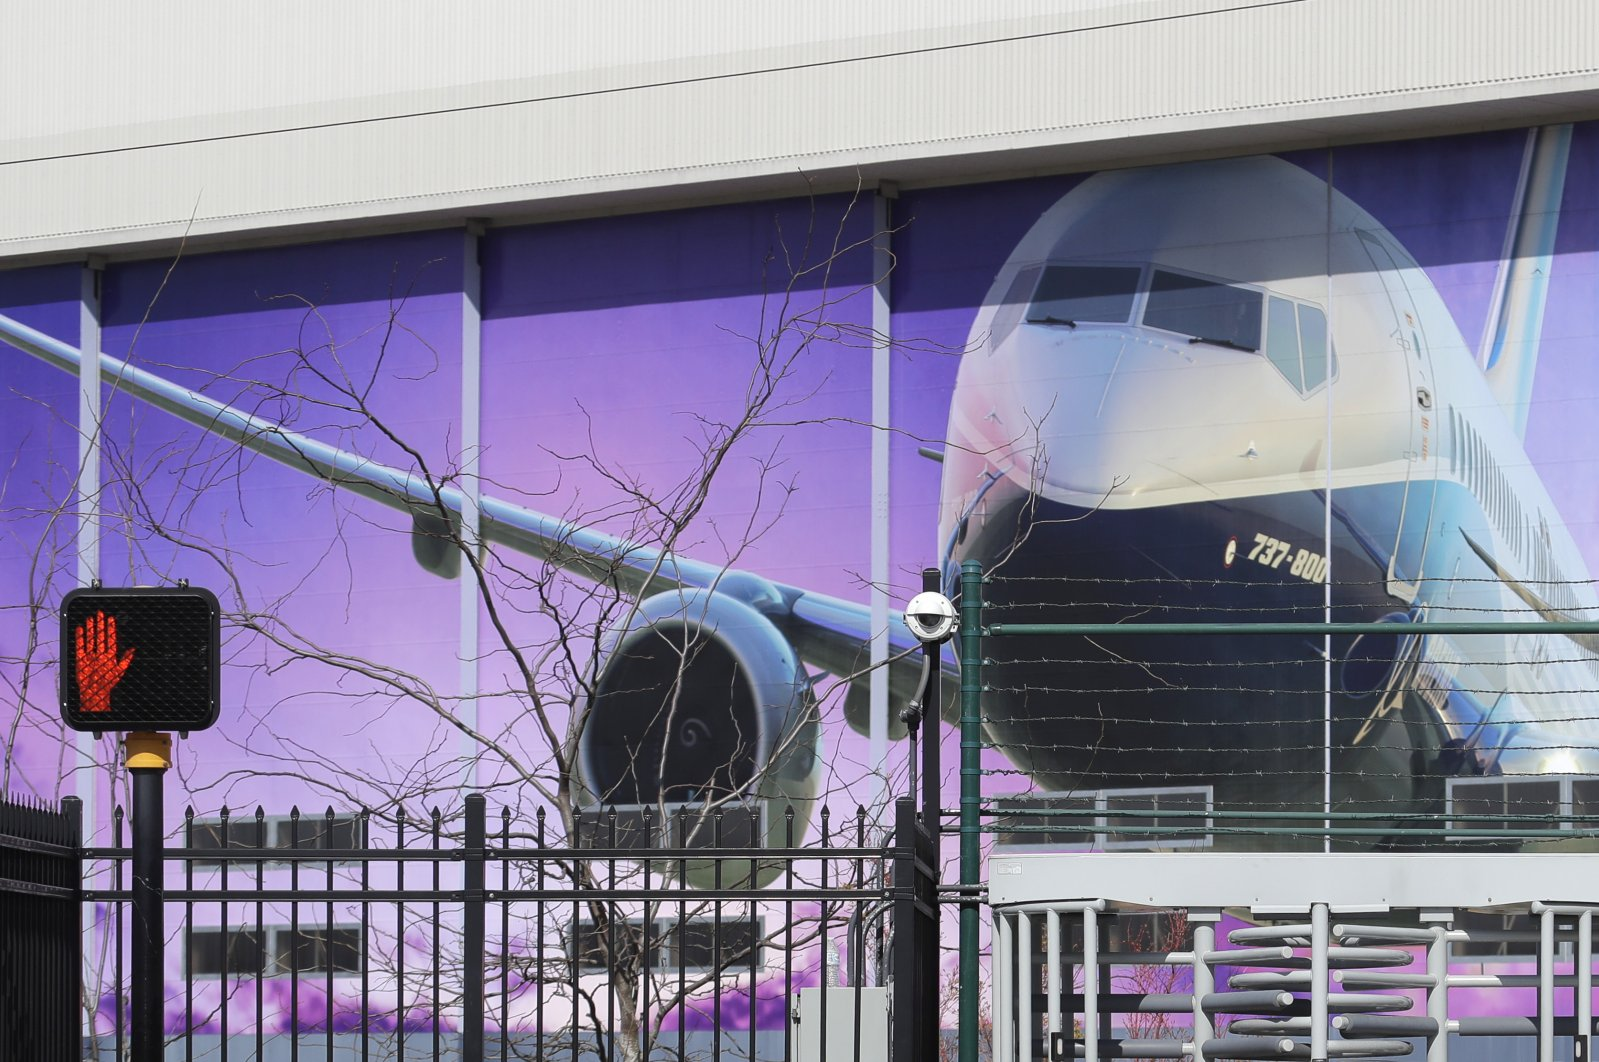 An image of a Boeing 737-800 airplane is shown on a building at Boeing Co.'s airplane assembly facility in Renton, Washington, U.S., April 6, 2020. (AP Photo)